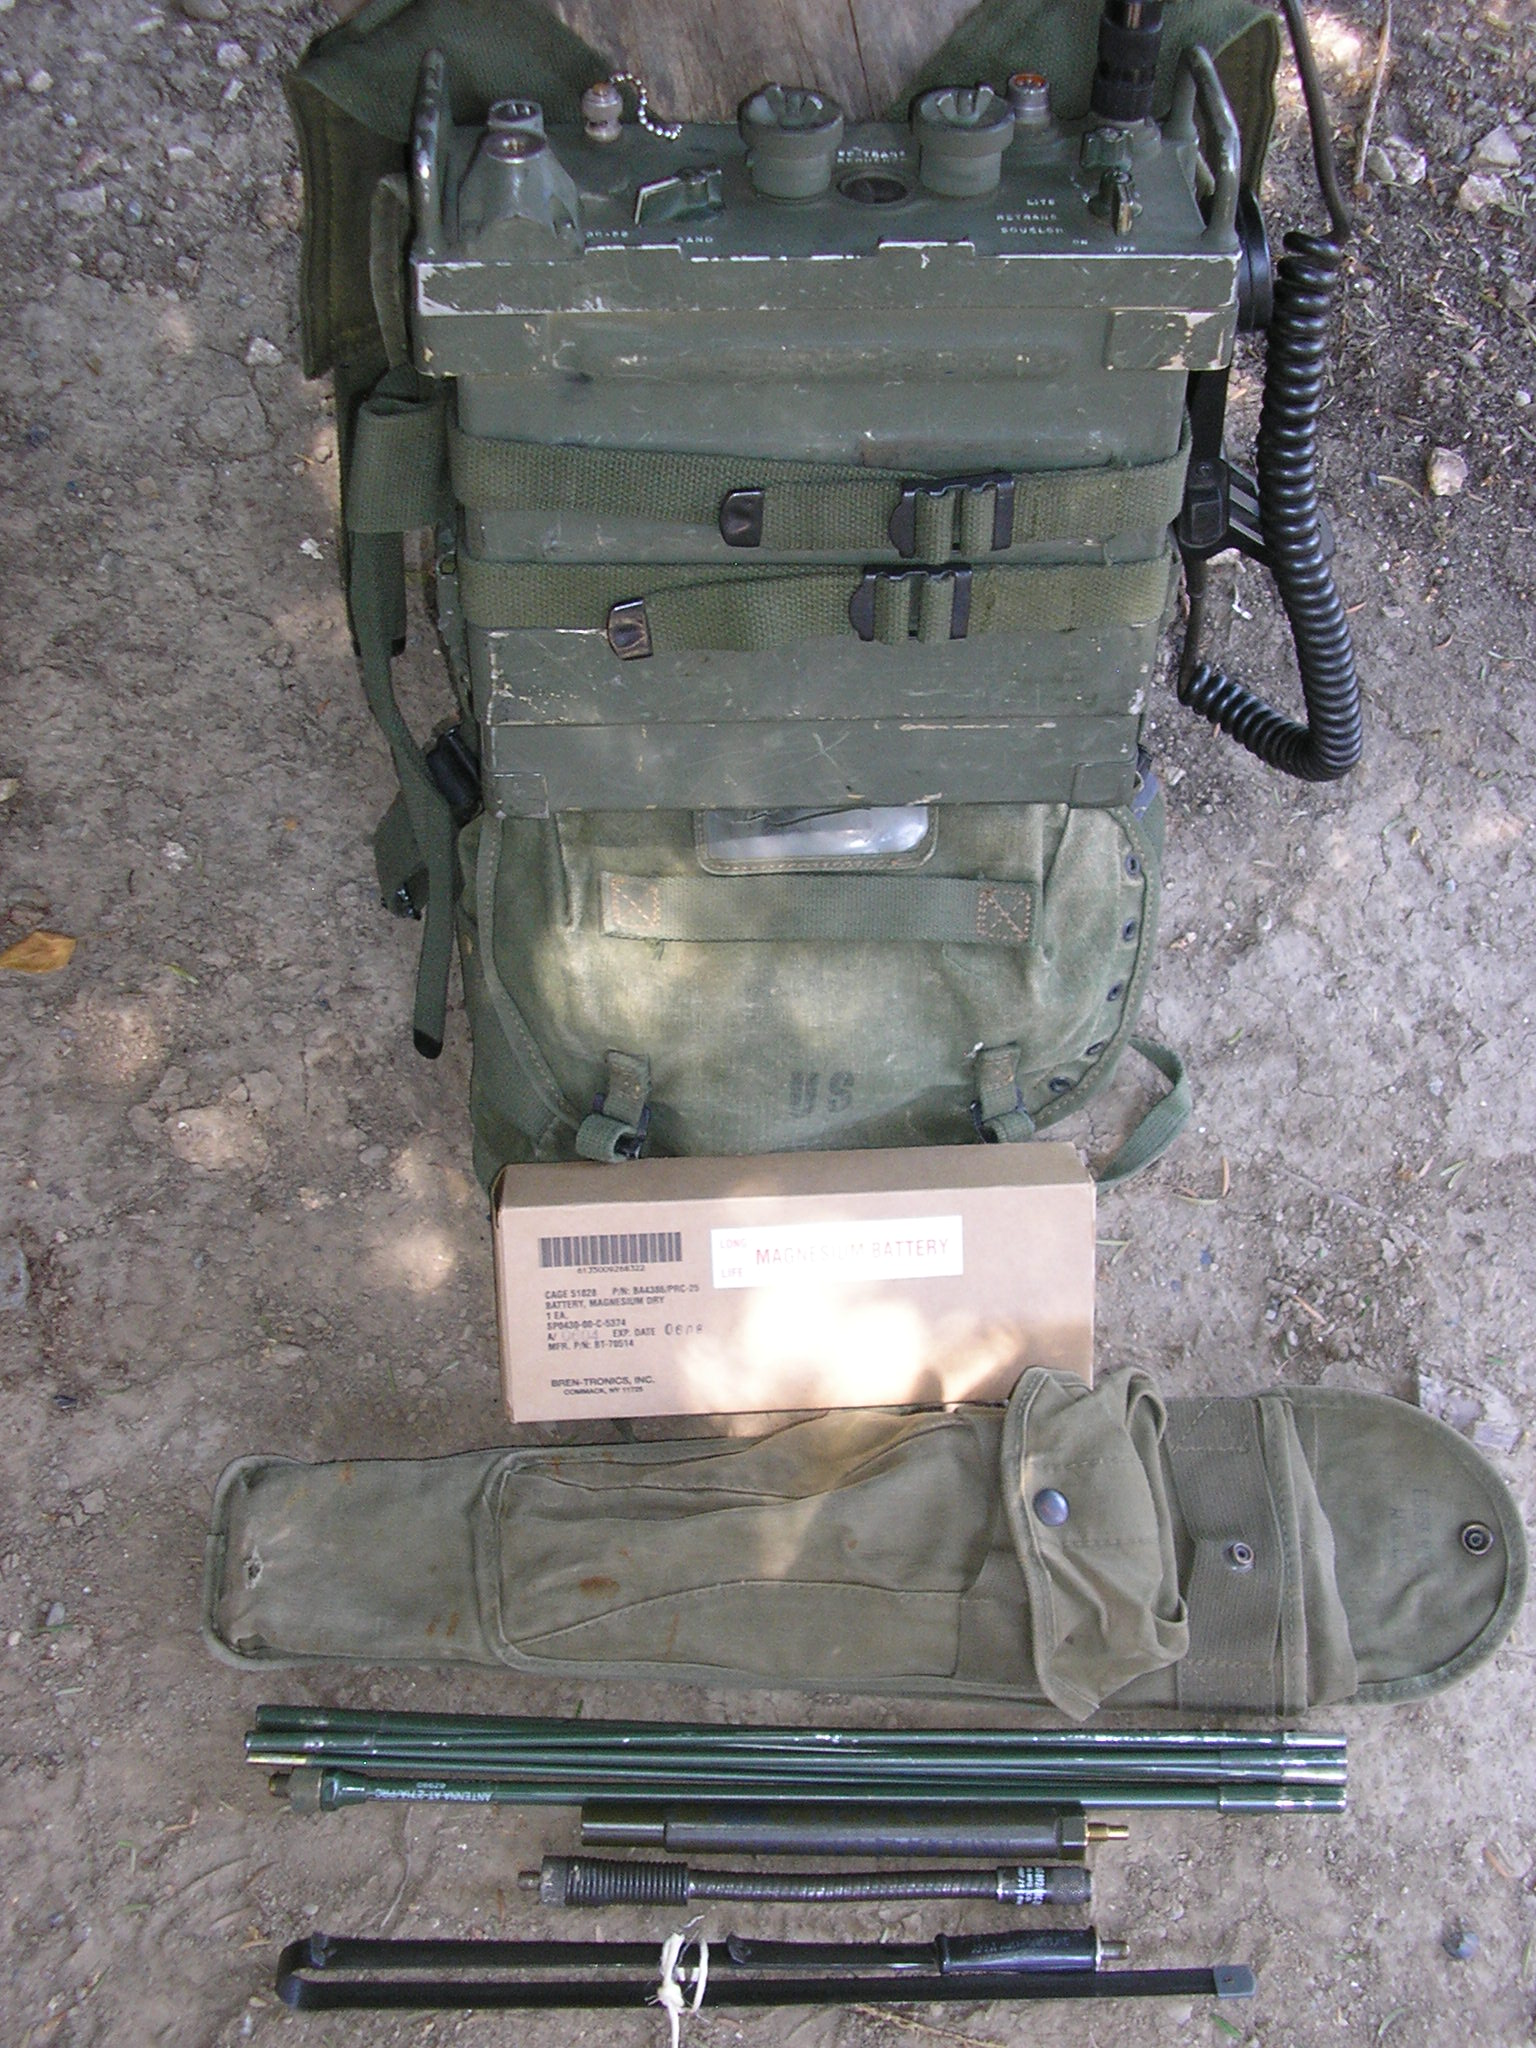 PRC-25 in harness with accesories